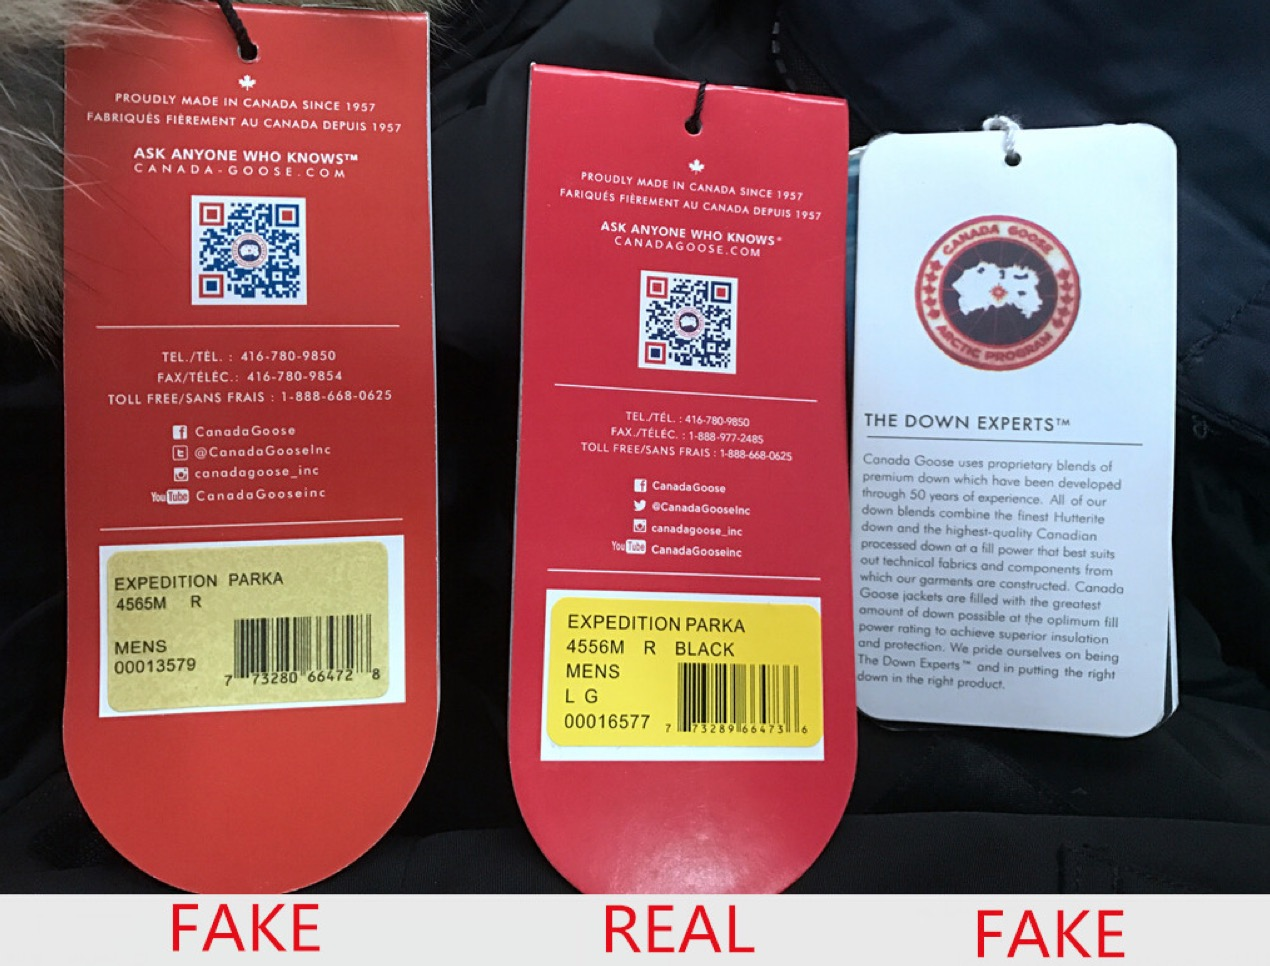 canada goose fake or real